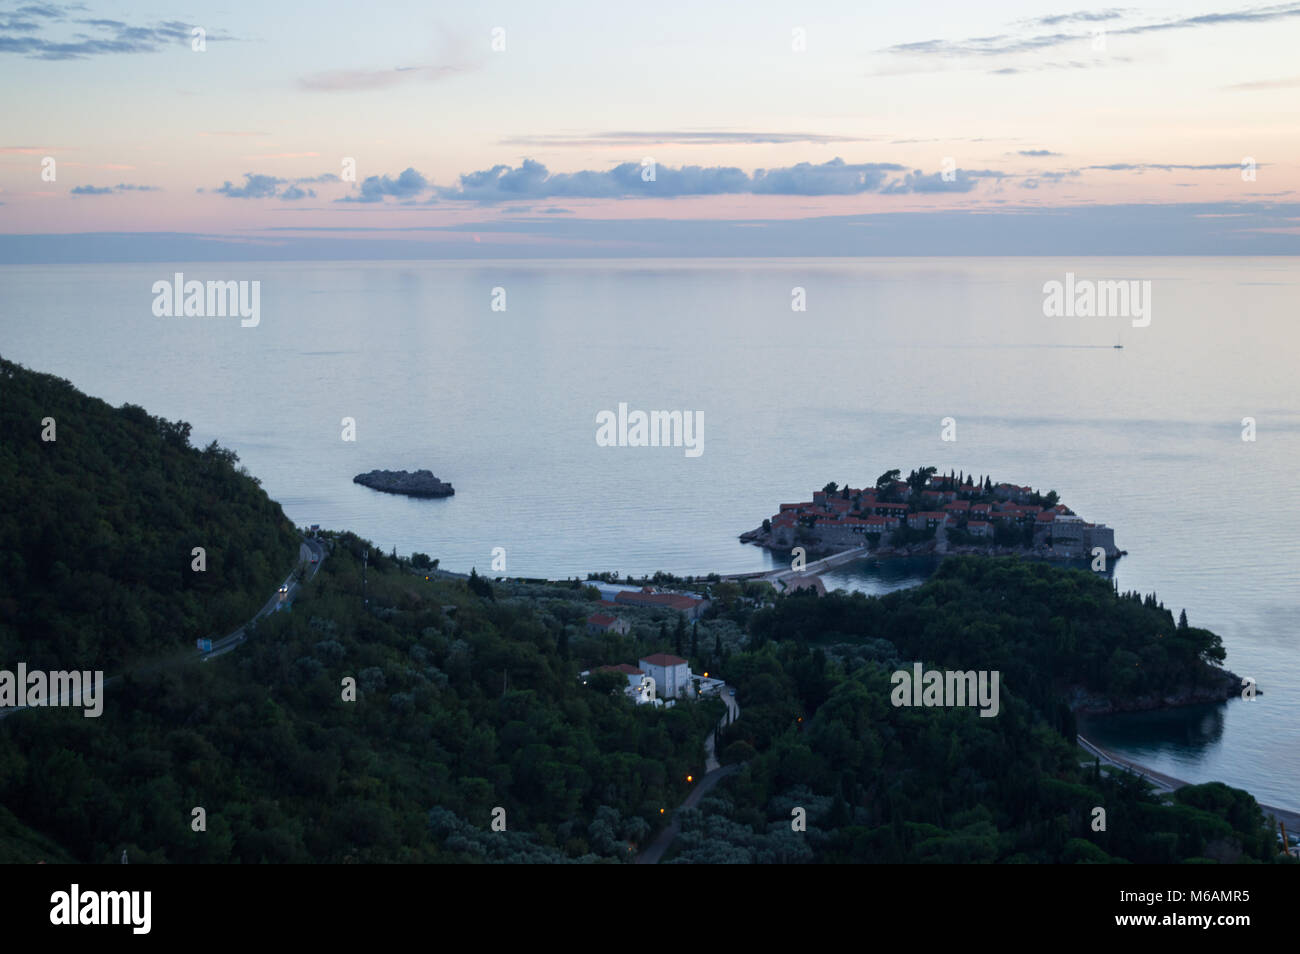 Different Panoramic Angle onto Sveti Stefan Island seen from Lookout Point during Sunset, Montenegro - Stock Image